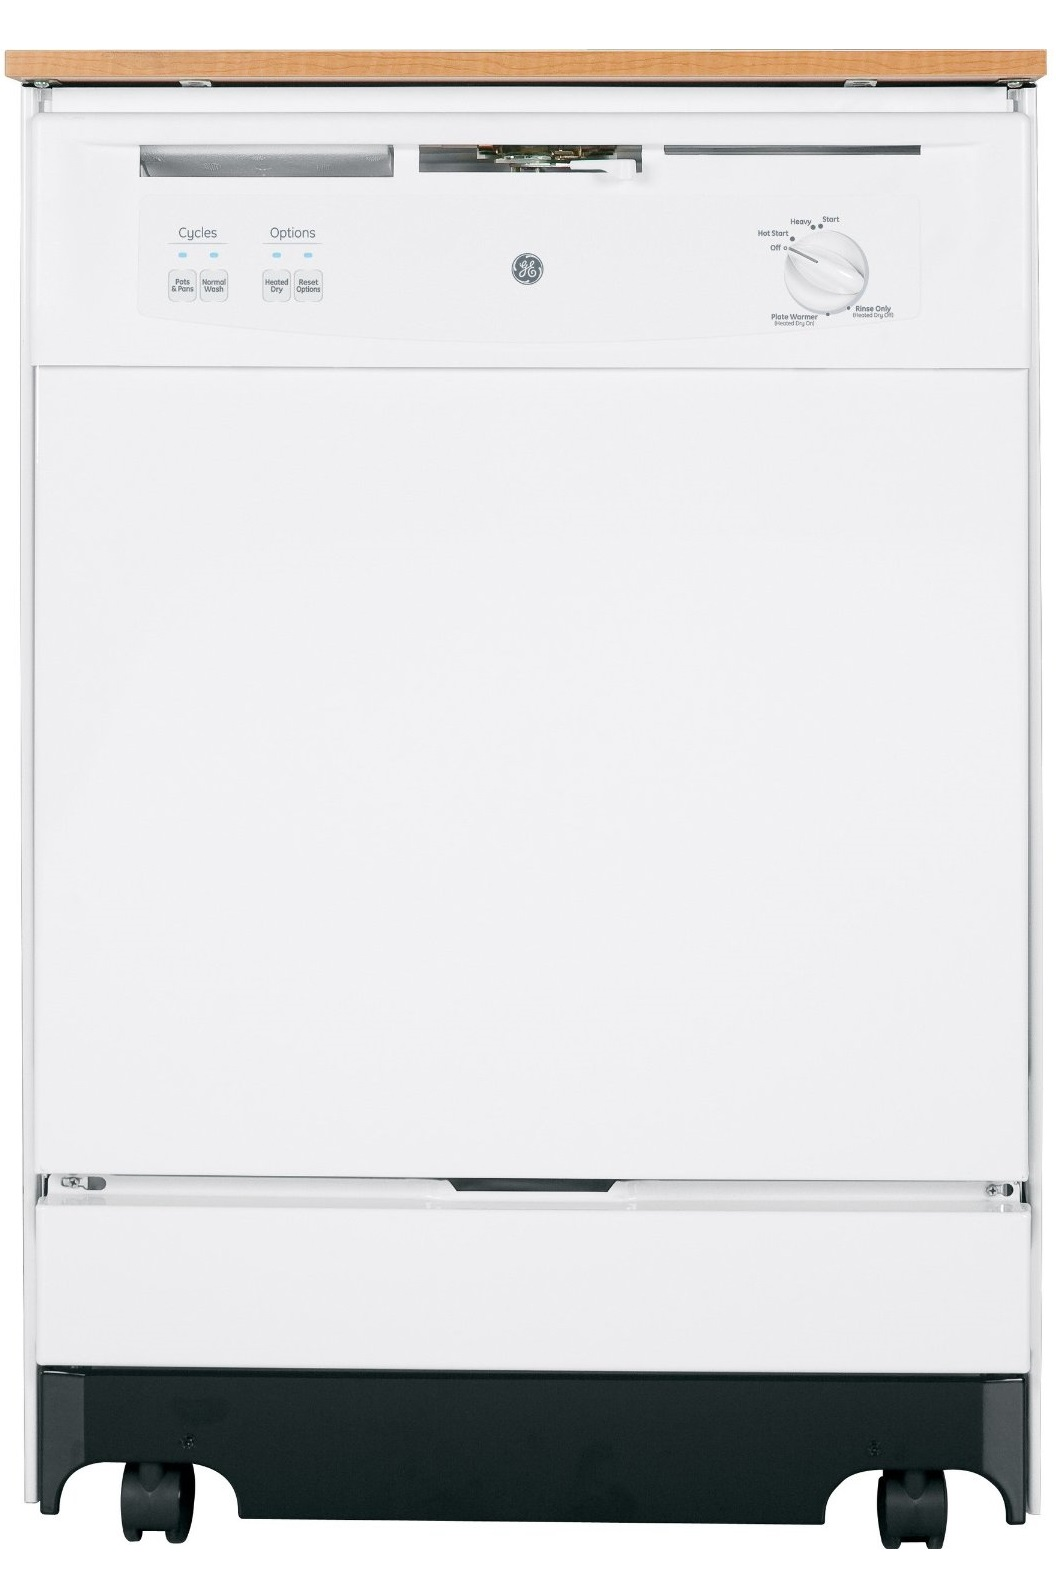 GE GSC3500DWW 25 White Portable Full Console Dishwasher Review